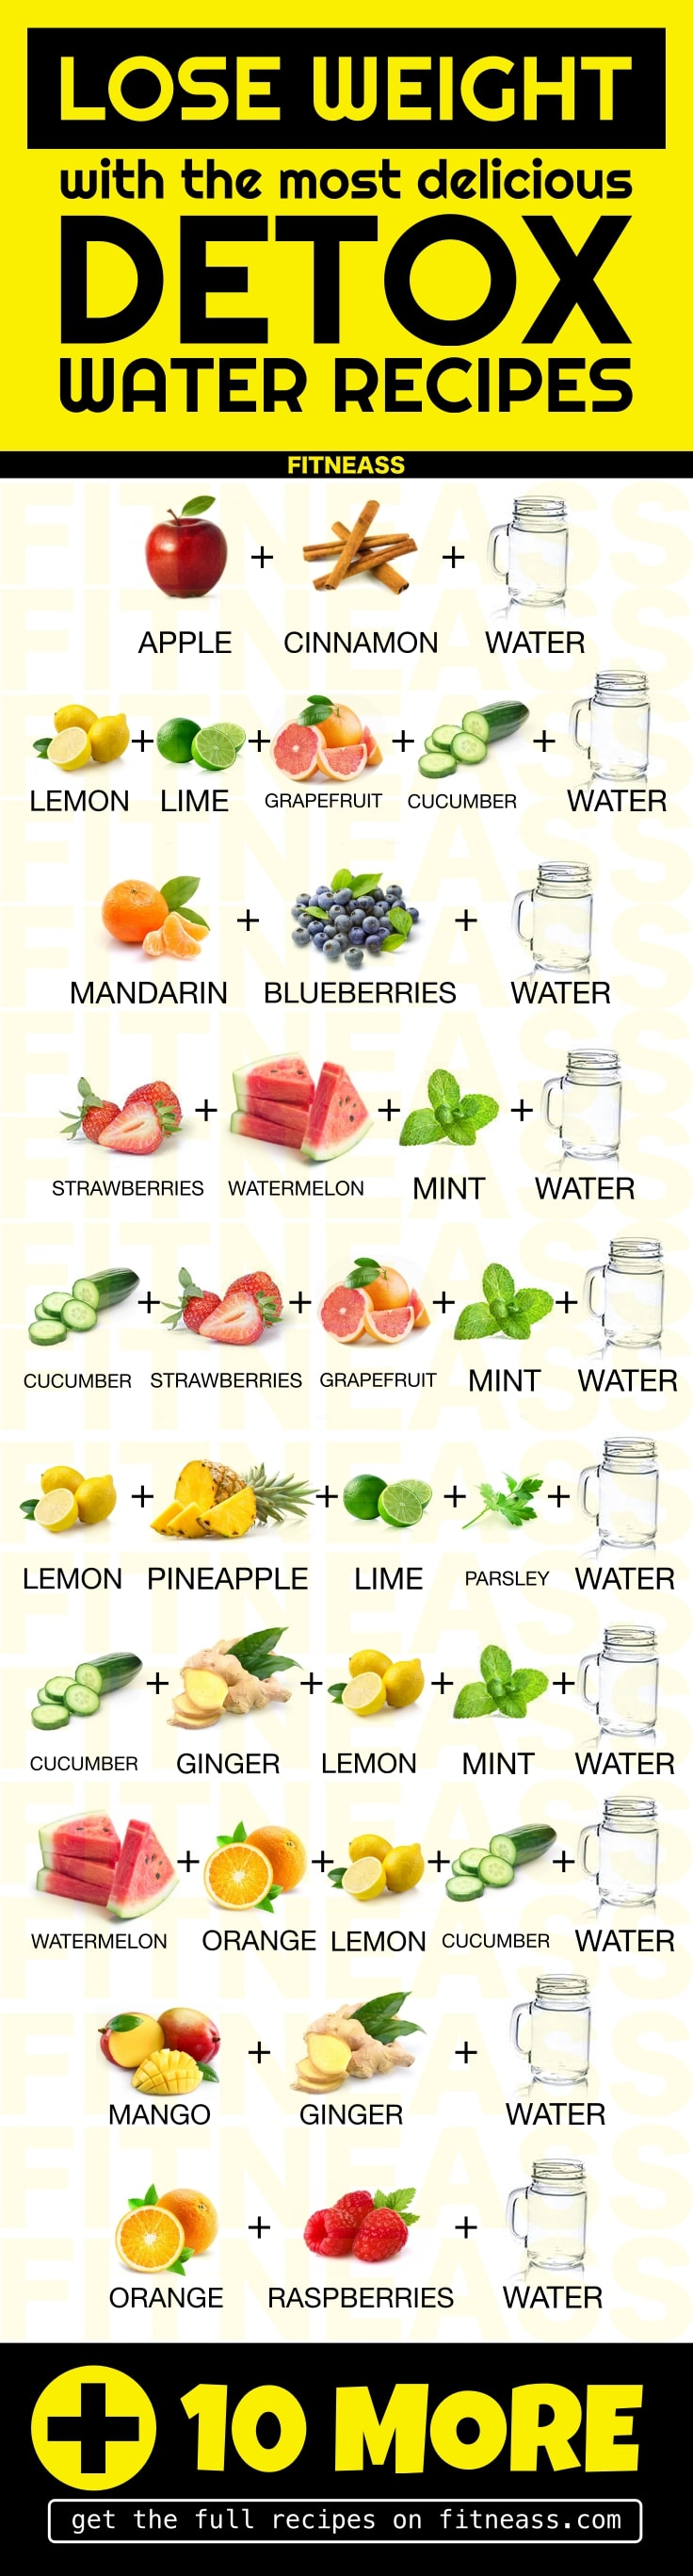 20 Detox Water Recipes Infographic